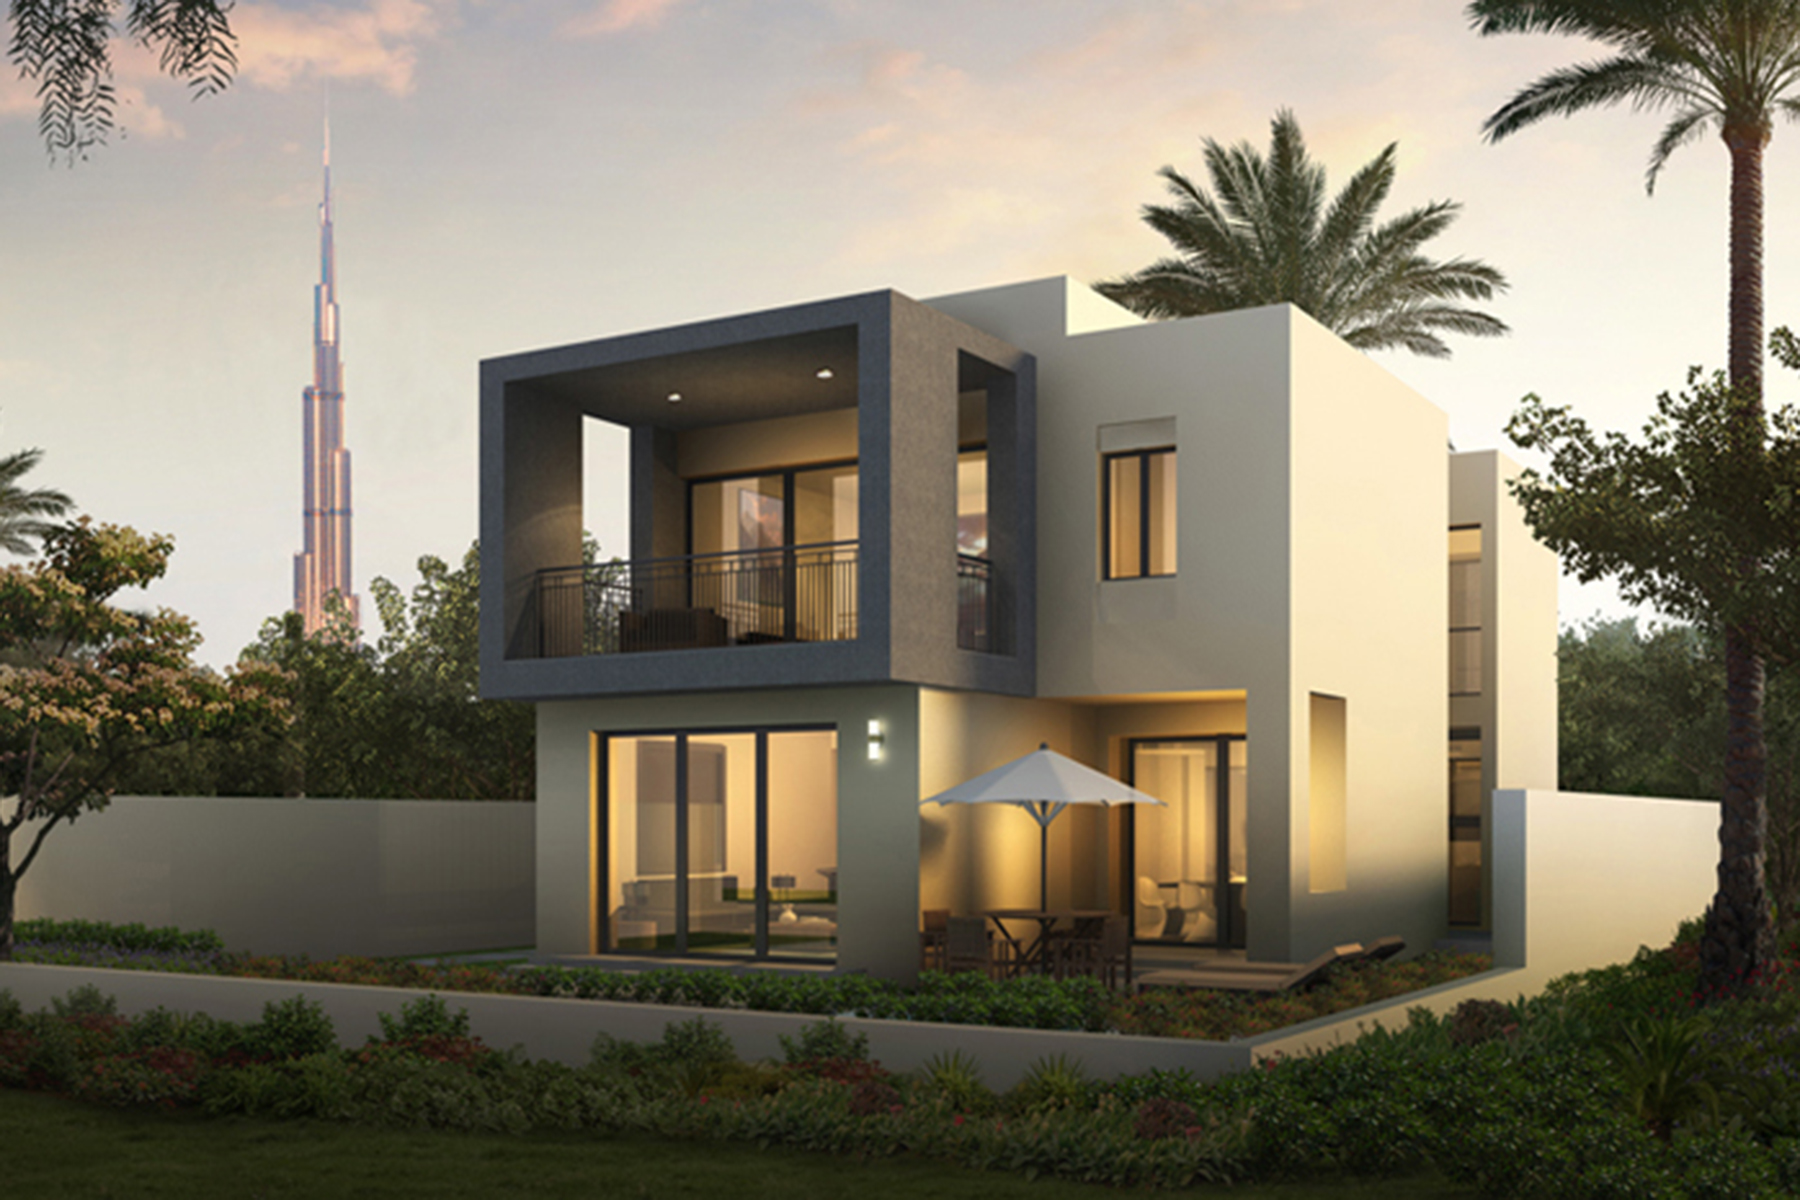 Single Family Home for Sale at 3 Bedroom Sidra 3 Large Plot 40 Percent Post Handover Dubai Hills Estate Sidra Villas, Dubai, 00000 United Arab Emirates